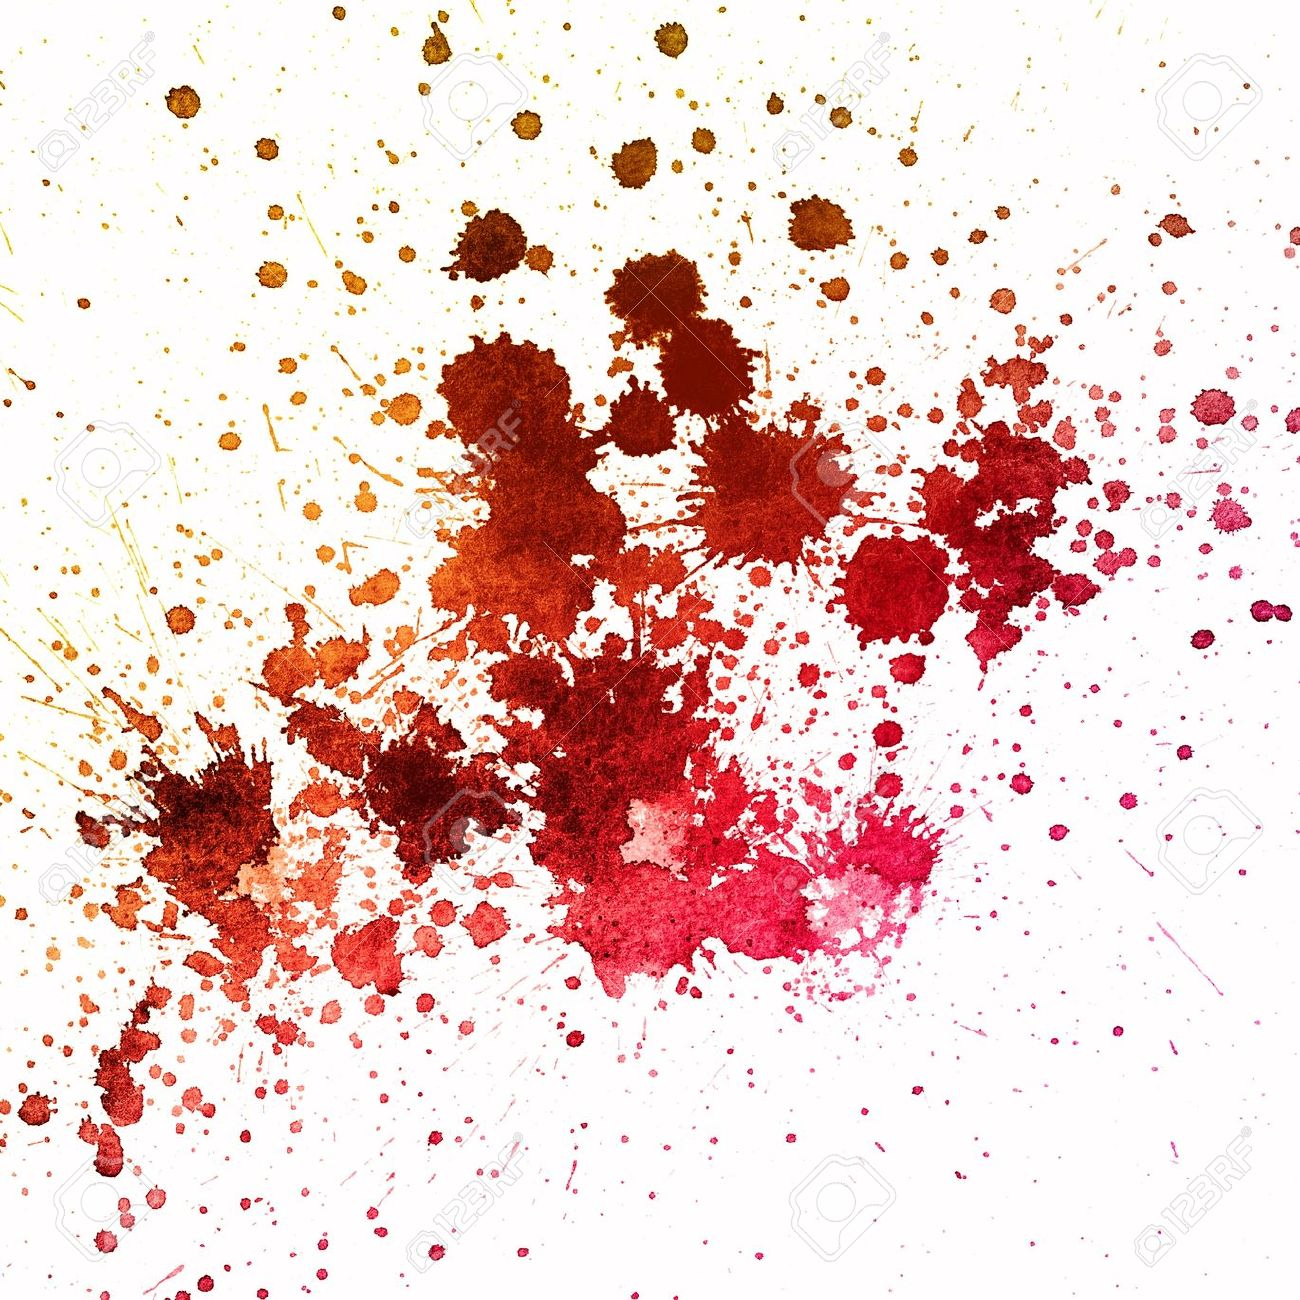 Blood stained clipart.